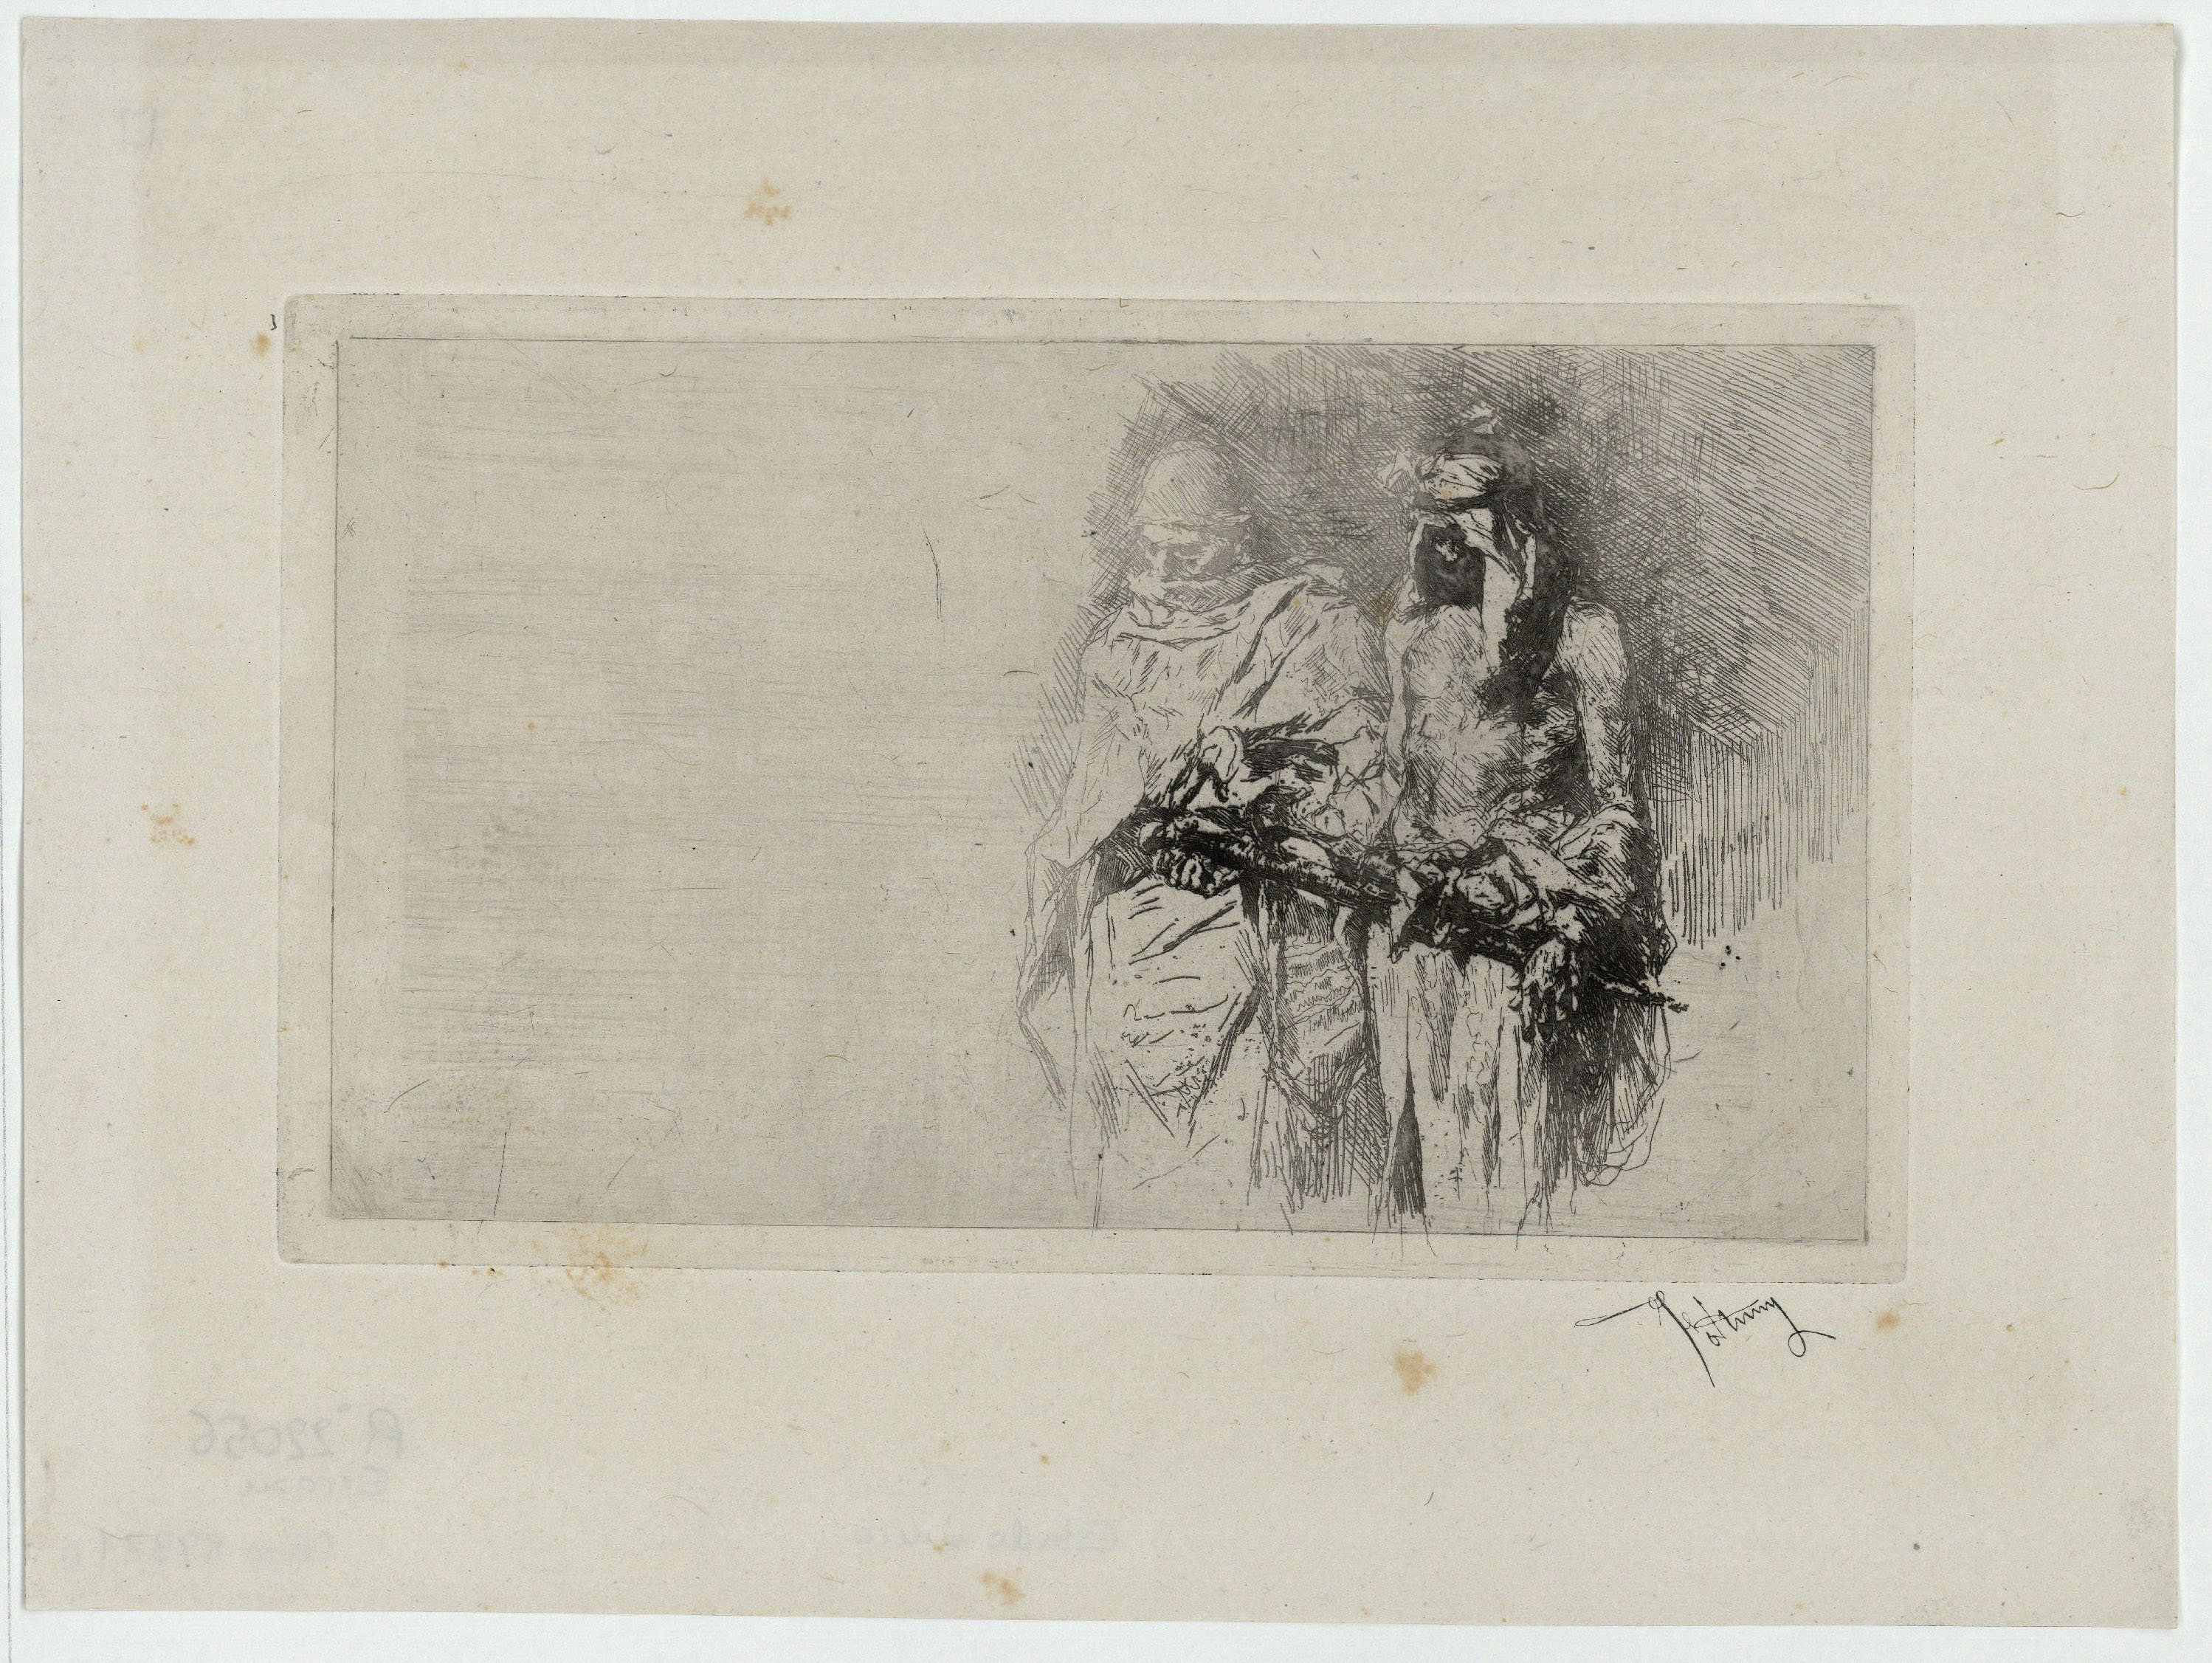 Marià Fortuny - Rough sketch (Moroccans) - [no-dating]